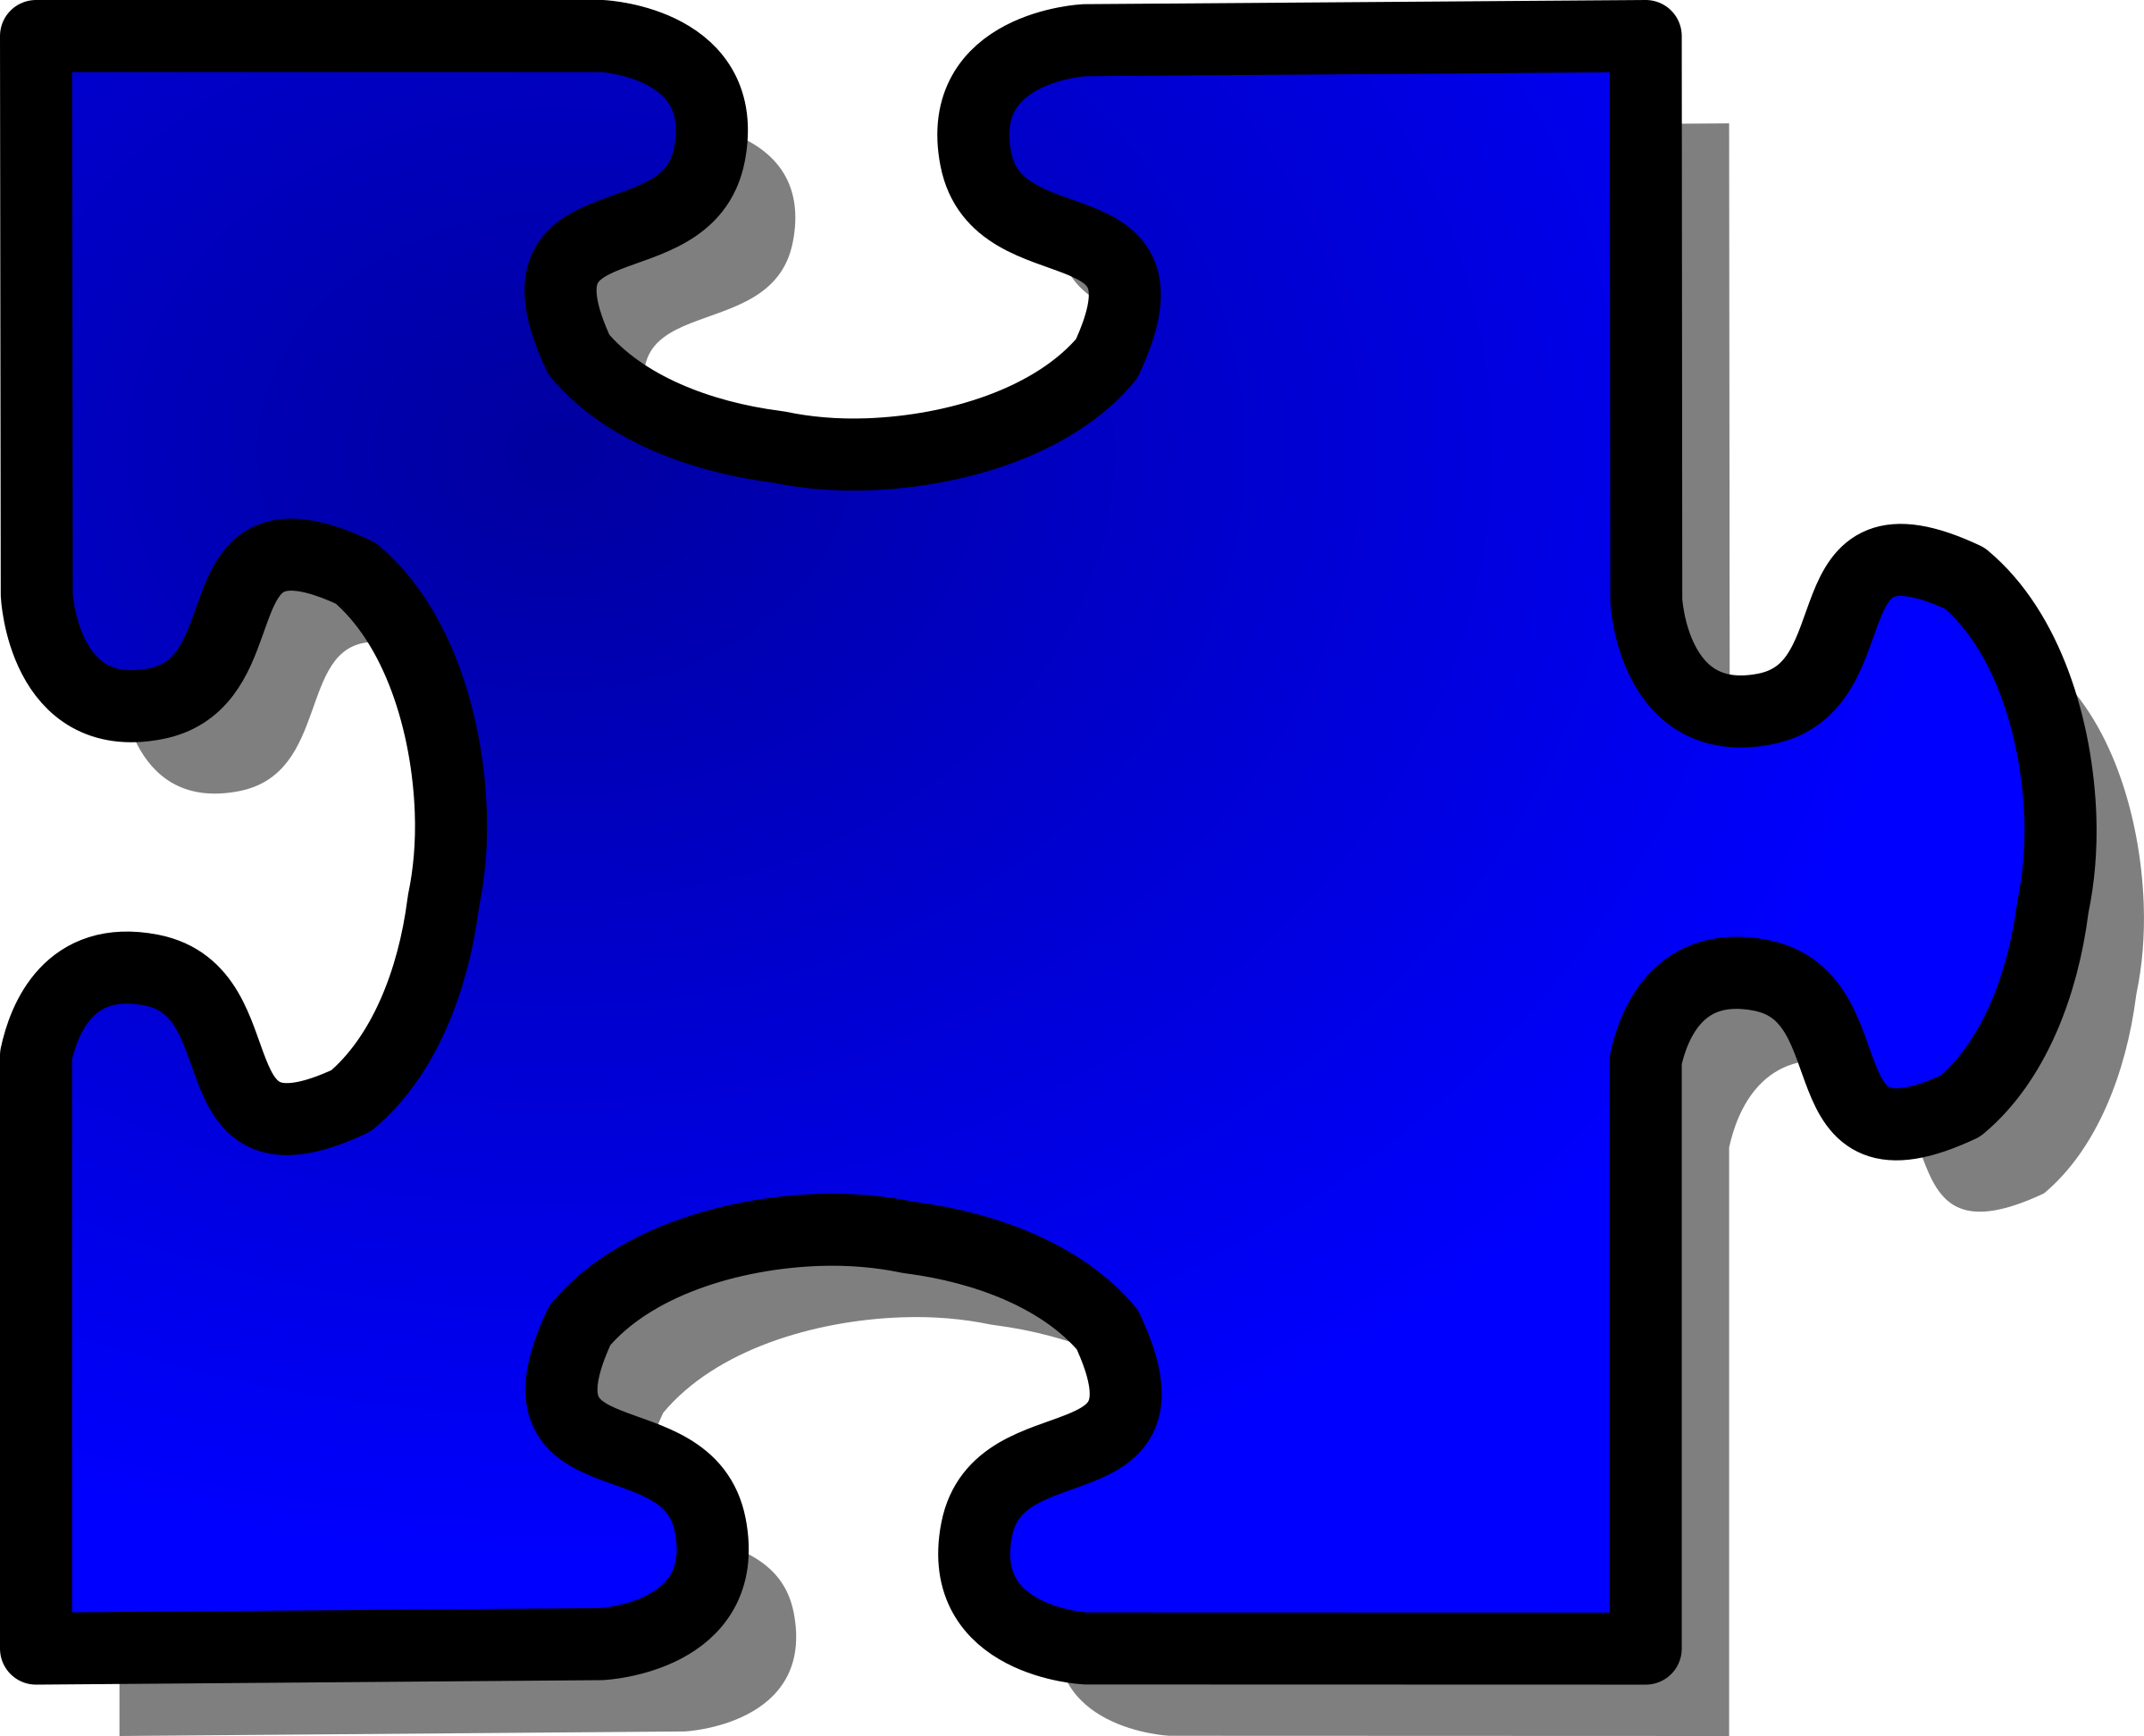 Blue Jigsaw piece 14 by nicubunu